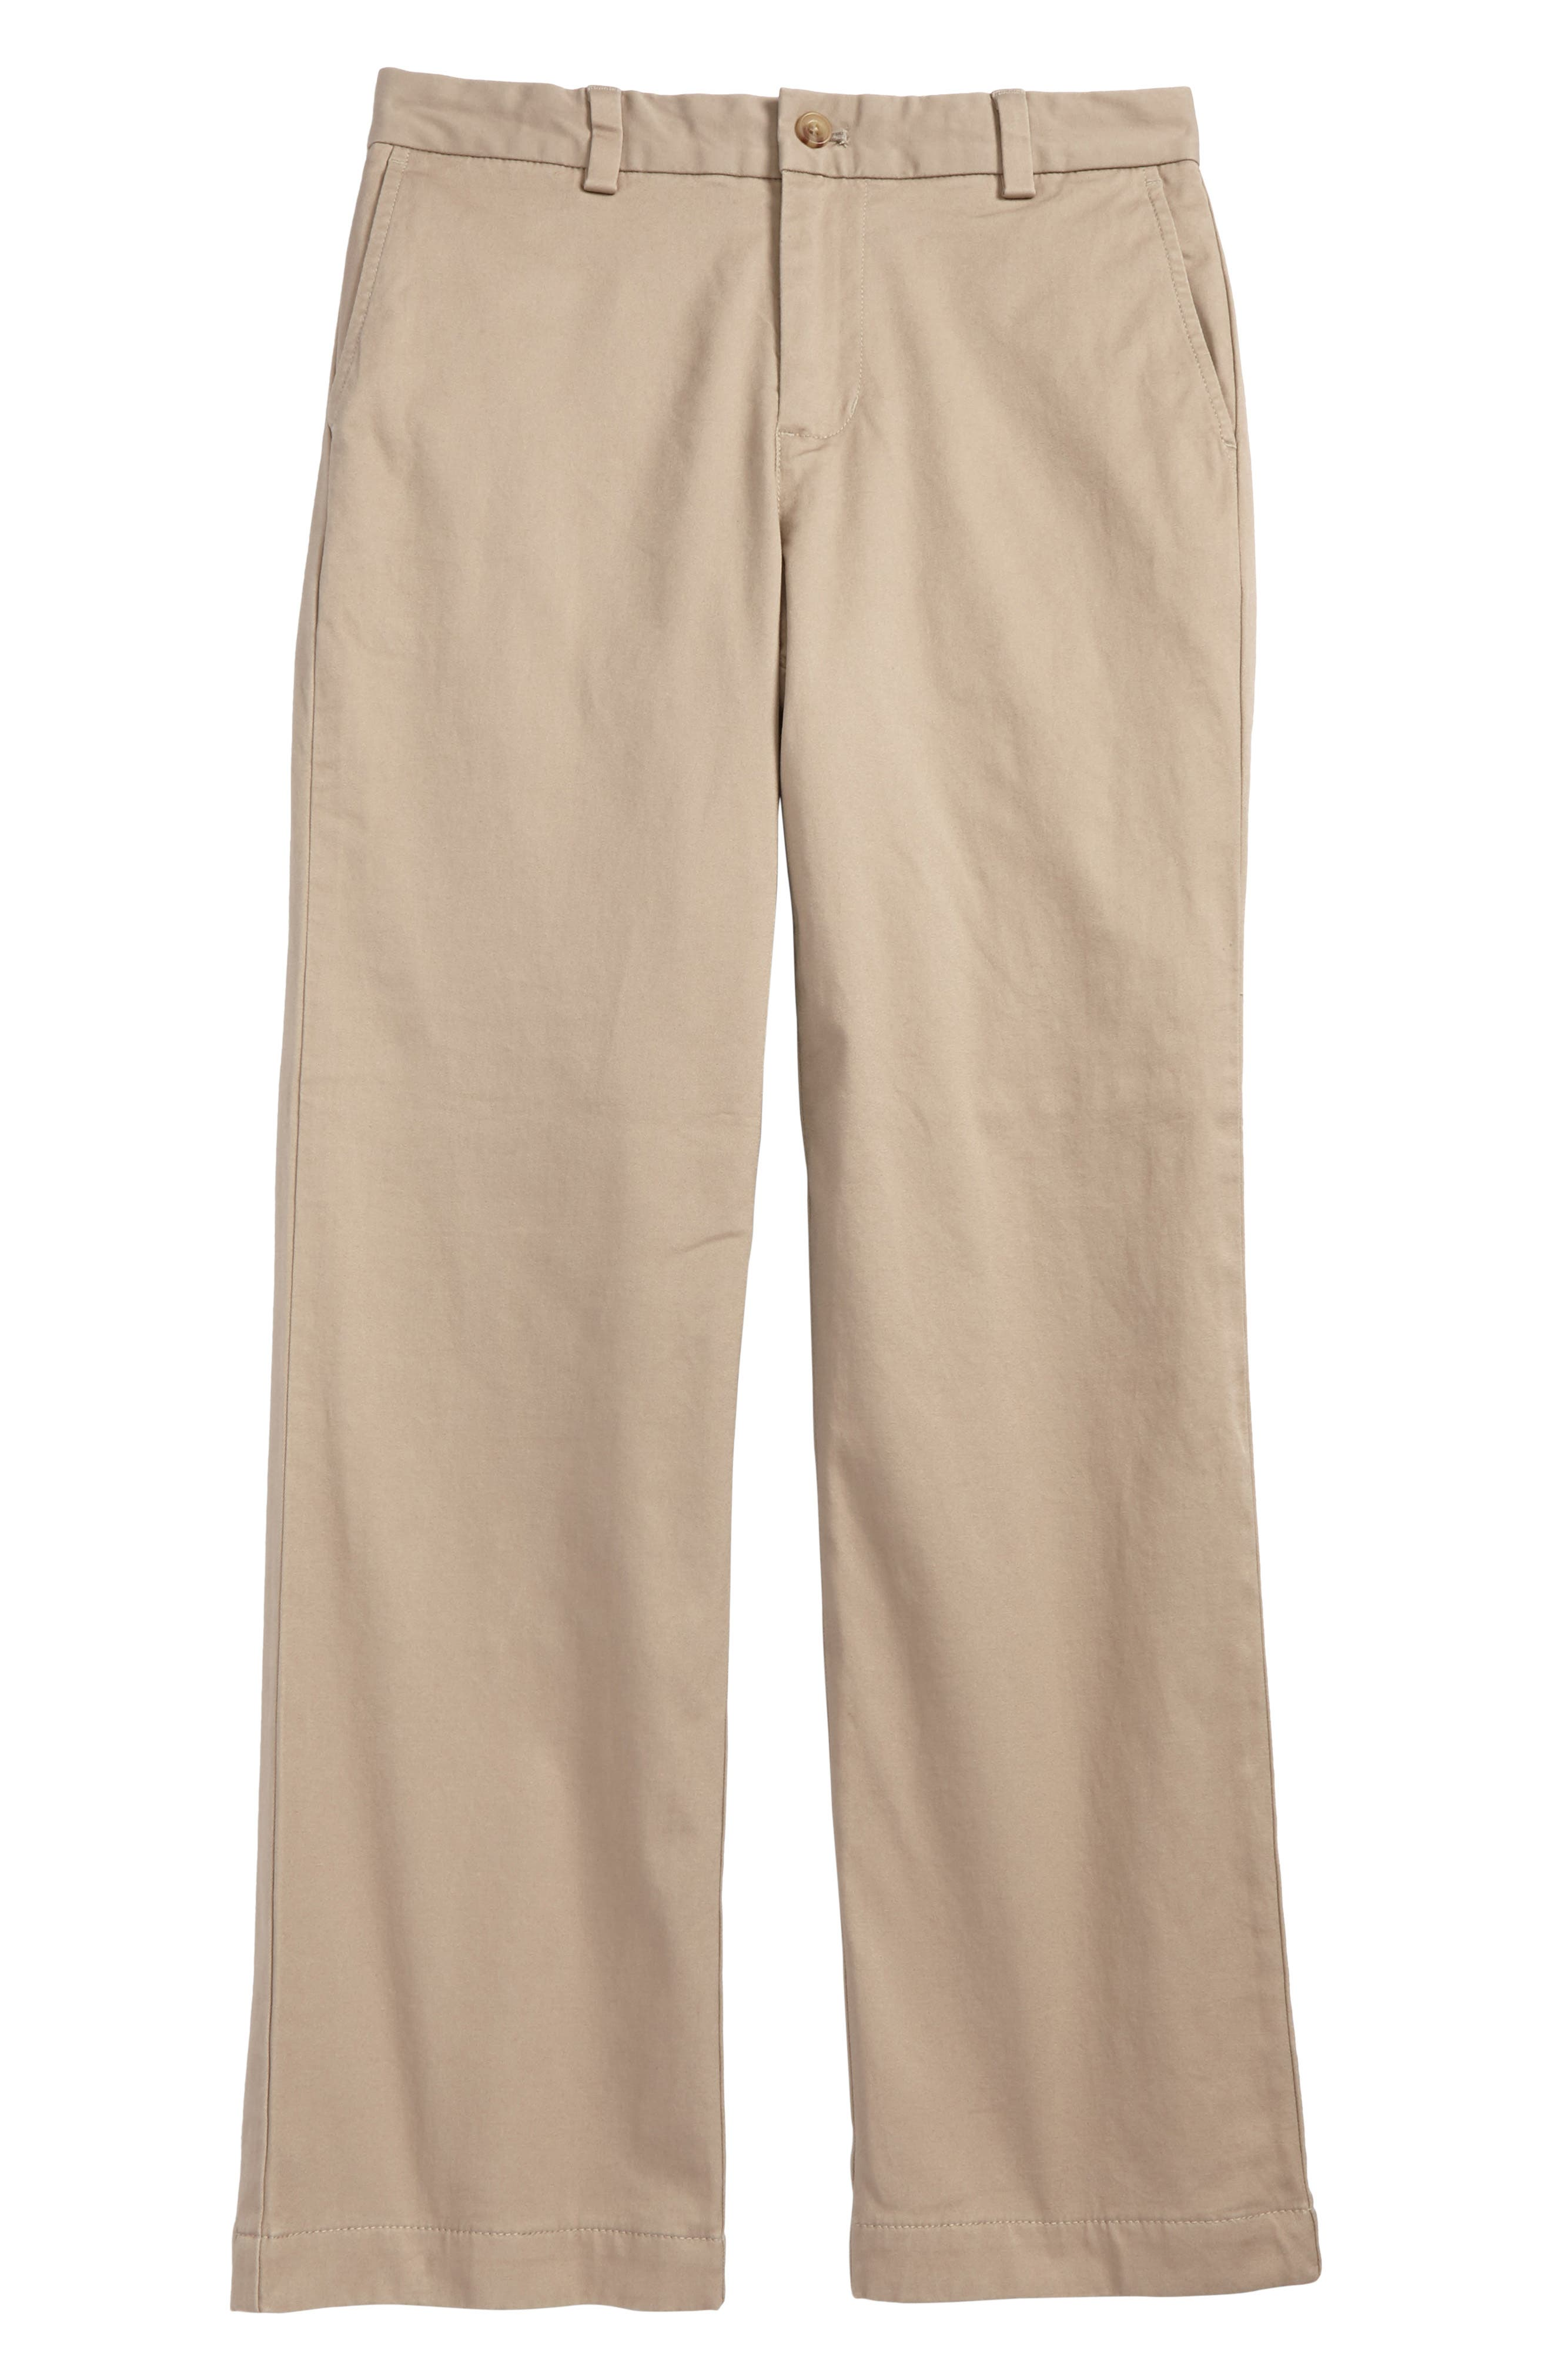 Breaker Flannel Lined Pants,                             Main thumbnail 1, color,                             250